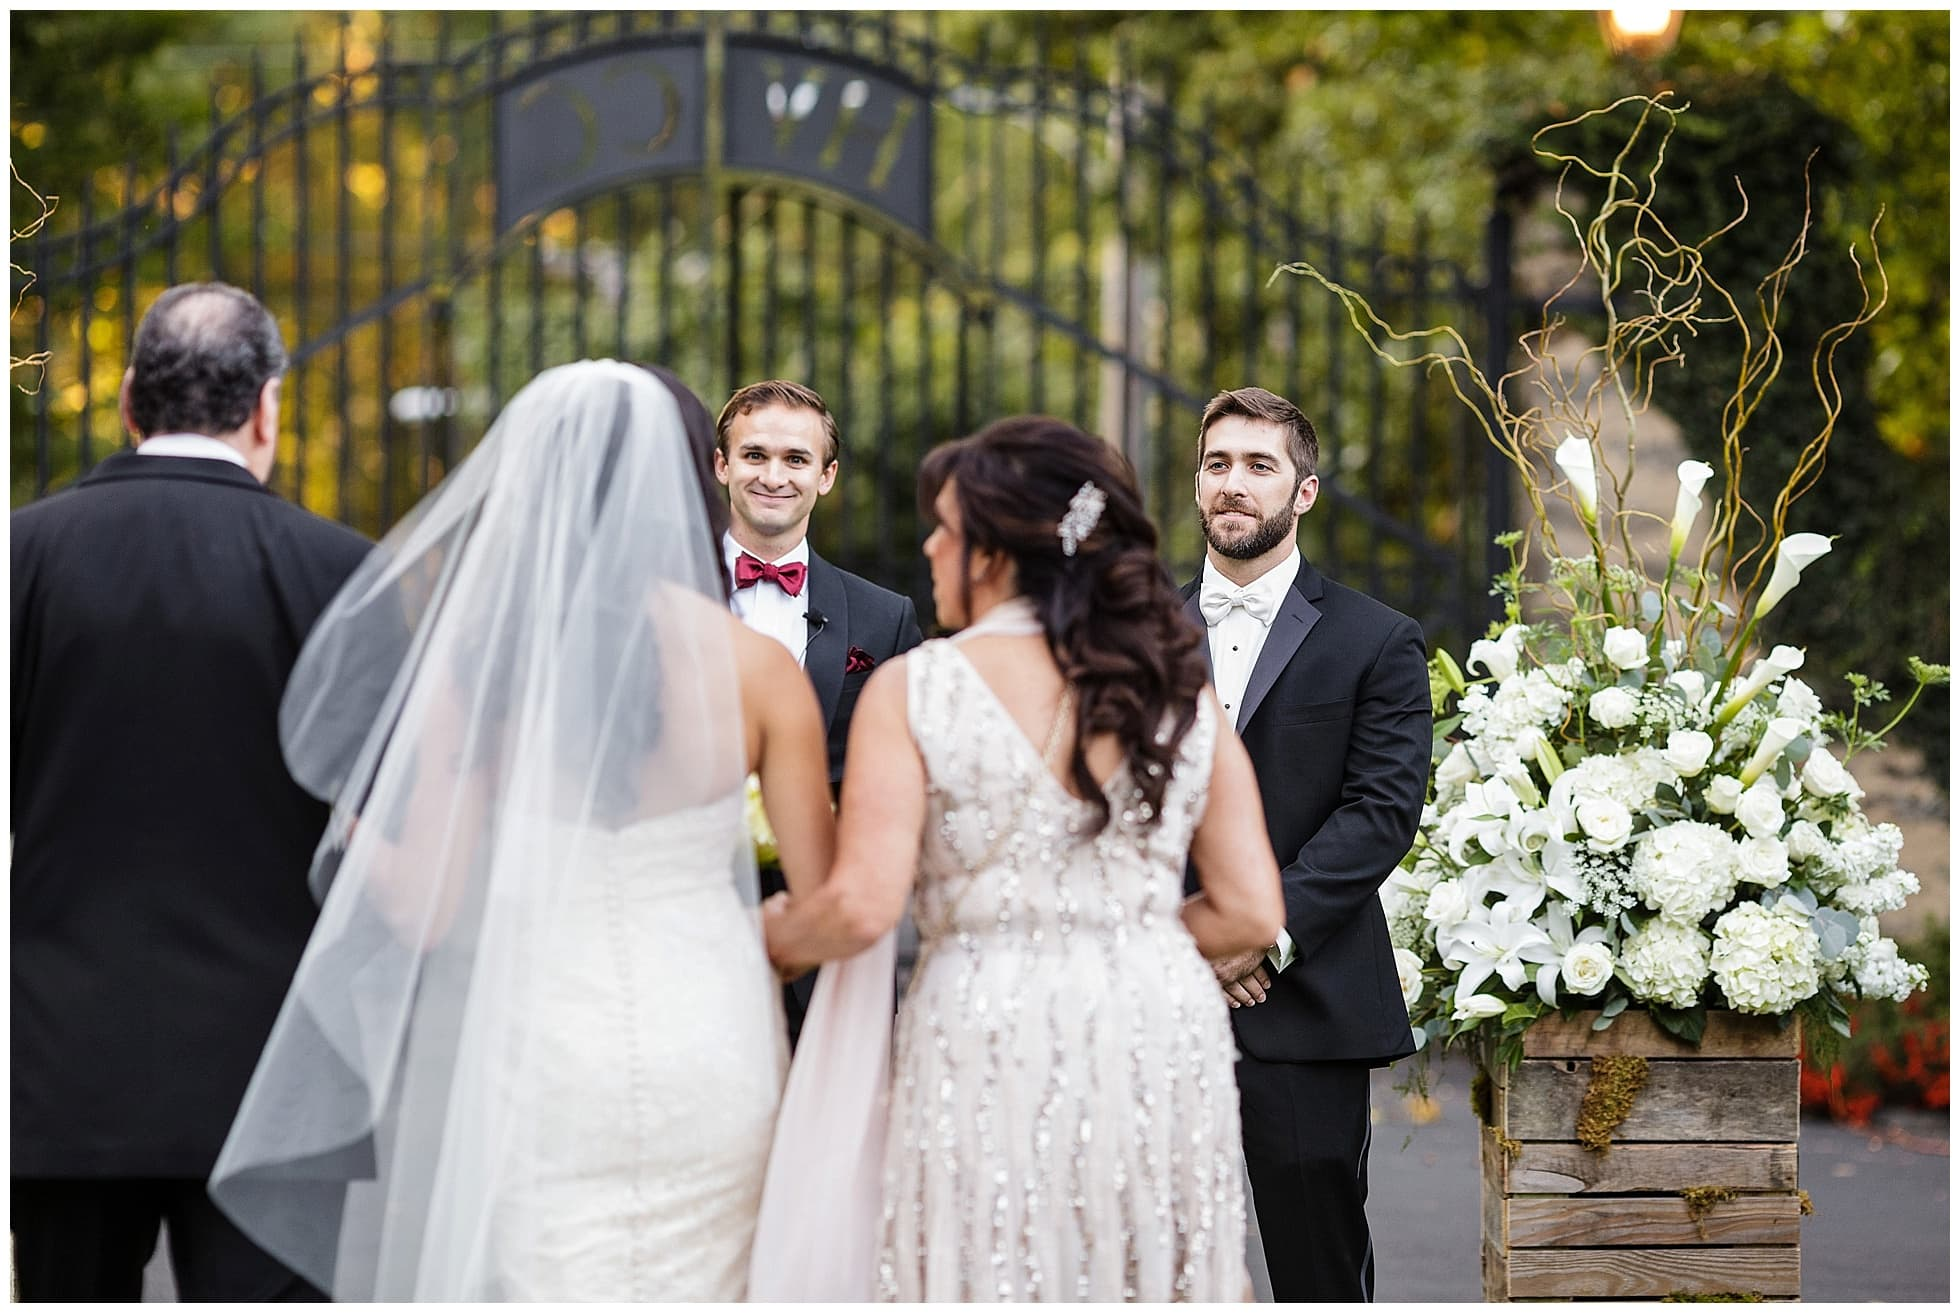 Outdoor Wedding Ceremony At Huntingdon Valley Country Club Photos By Ashley Gerrity Photography